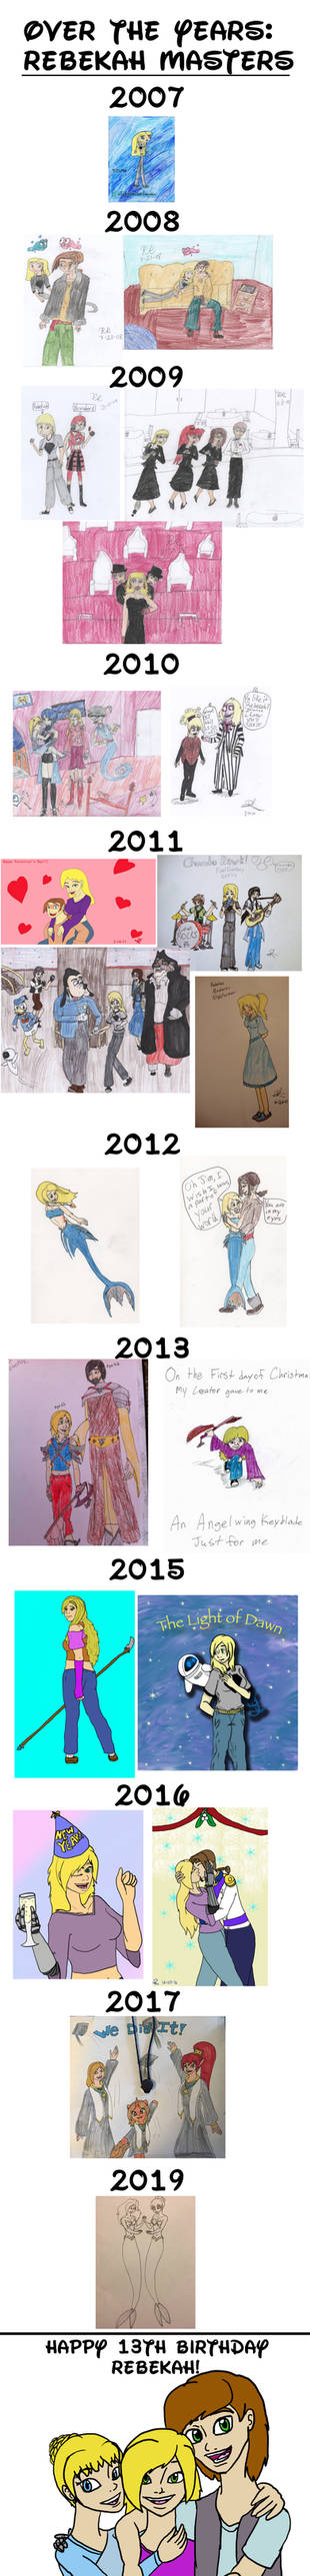 Over the Years - Rebekah Masters